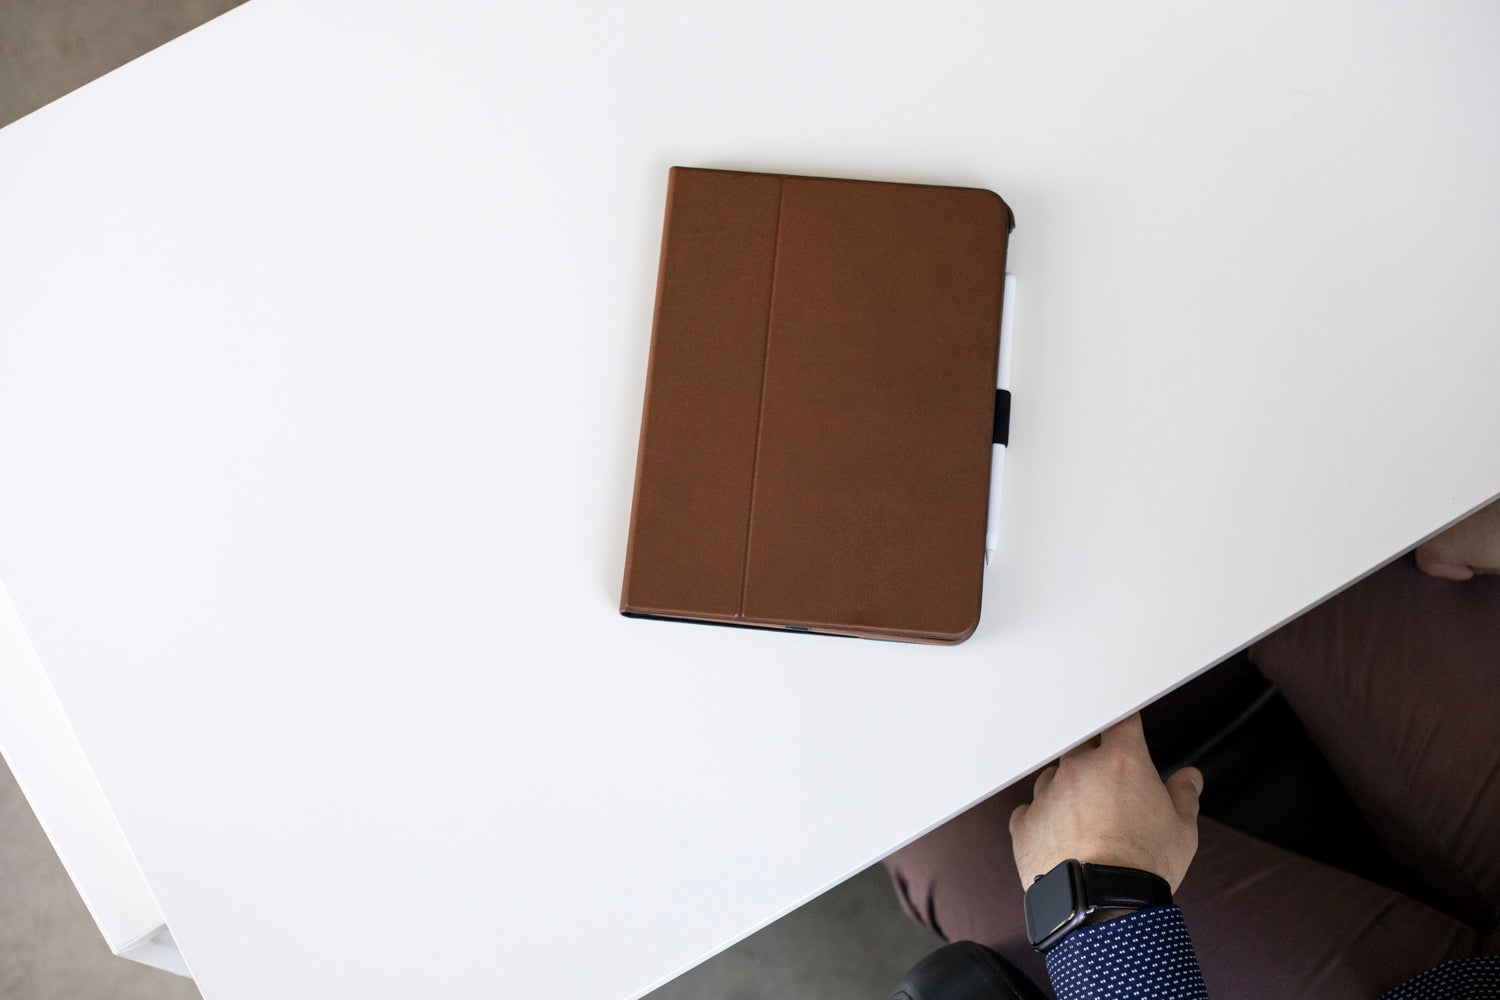 Leather iPad Covers | What Makes Leather So Desirable?